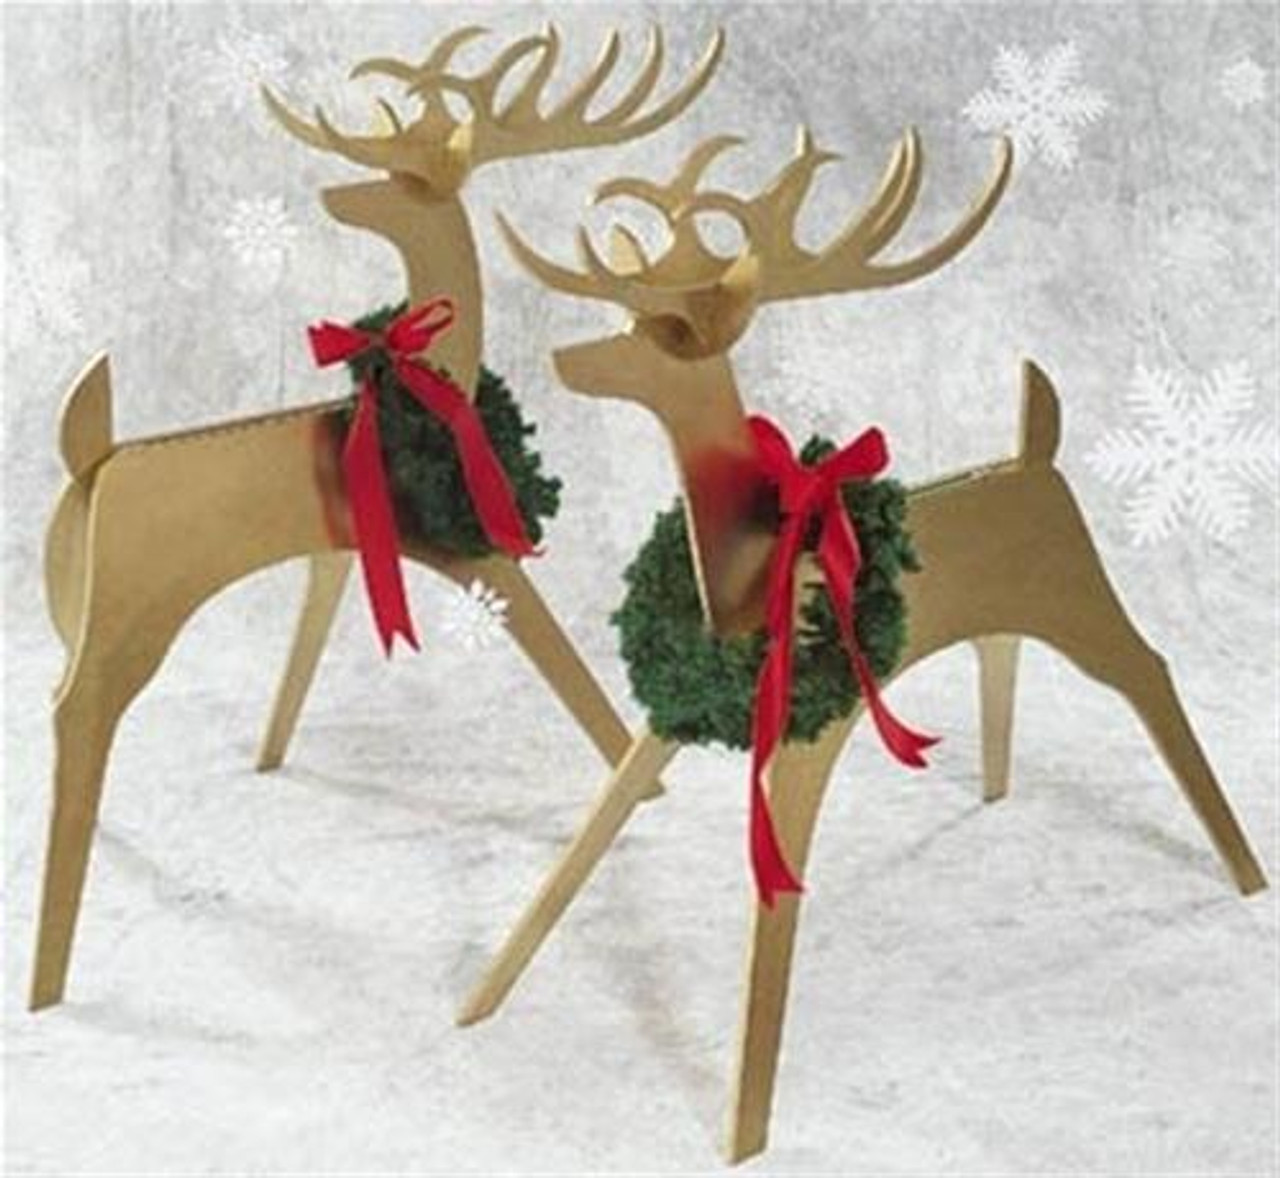 Sleek and Stylish Reindeer Woodworking Plan would make the perfect holiday gift.